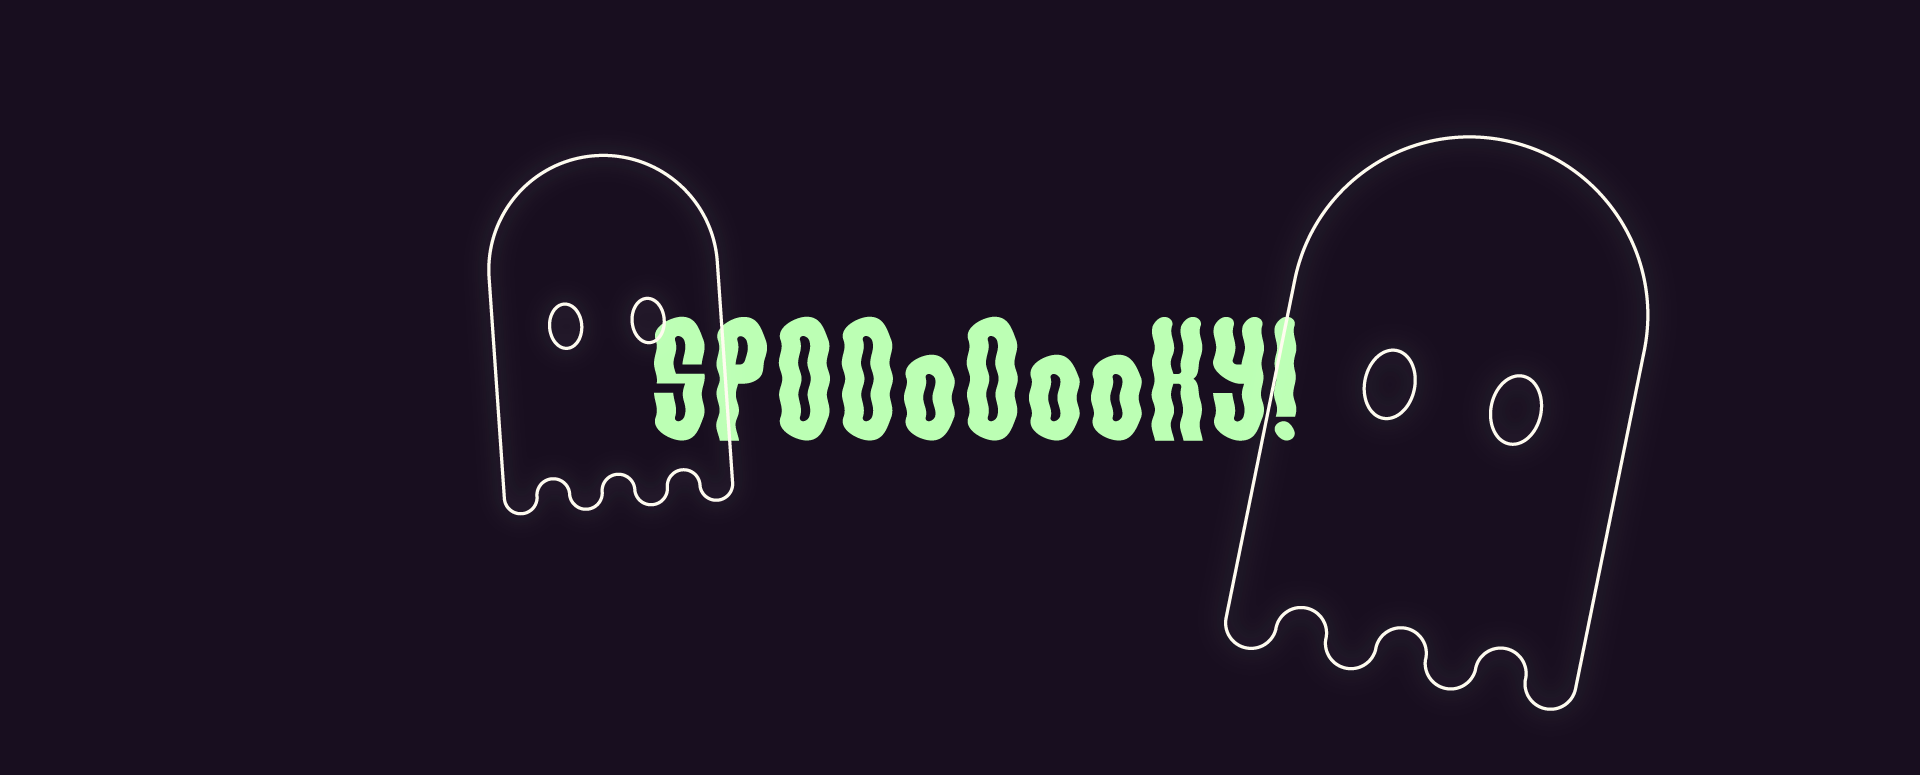 Design resources for all of your creative Halloween projects!